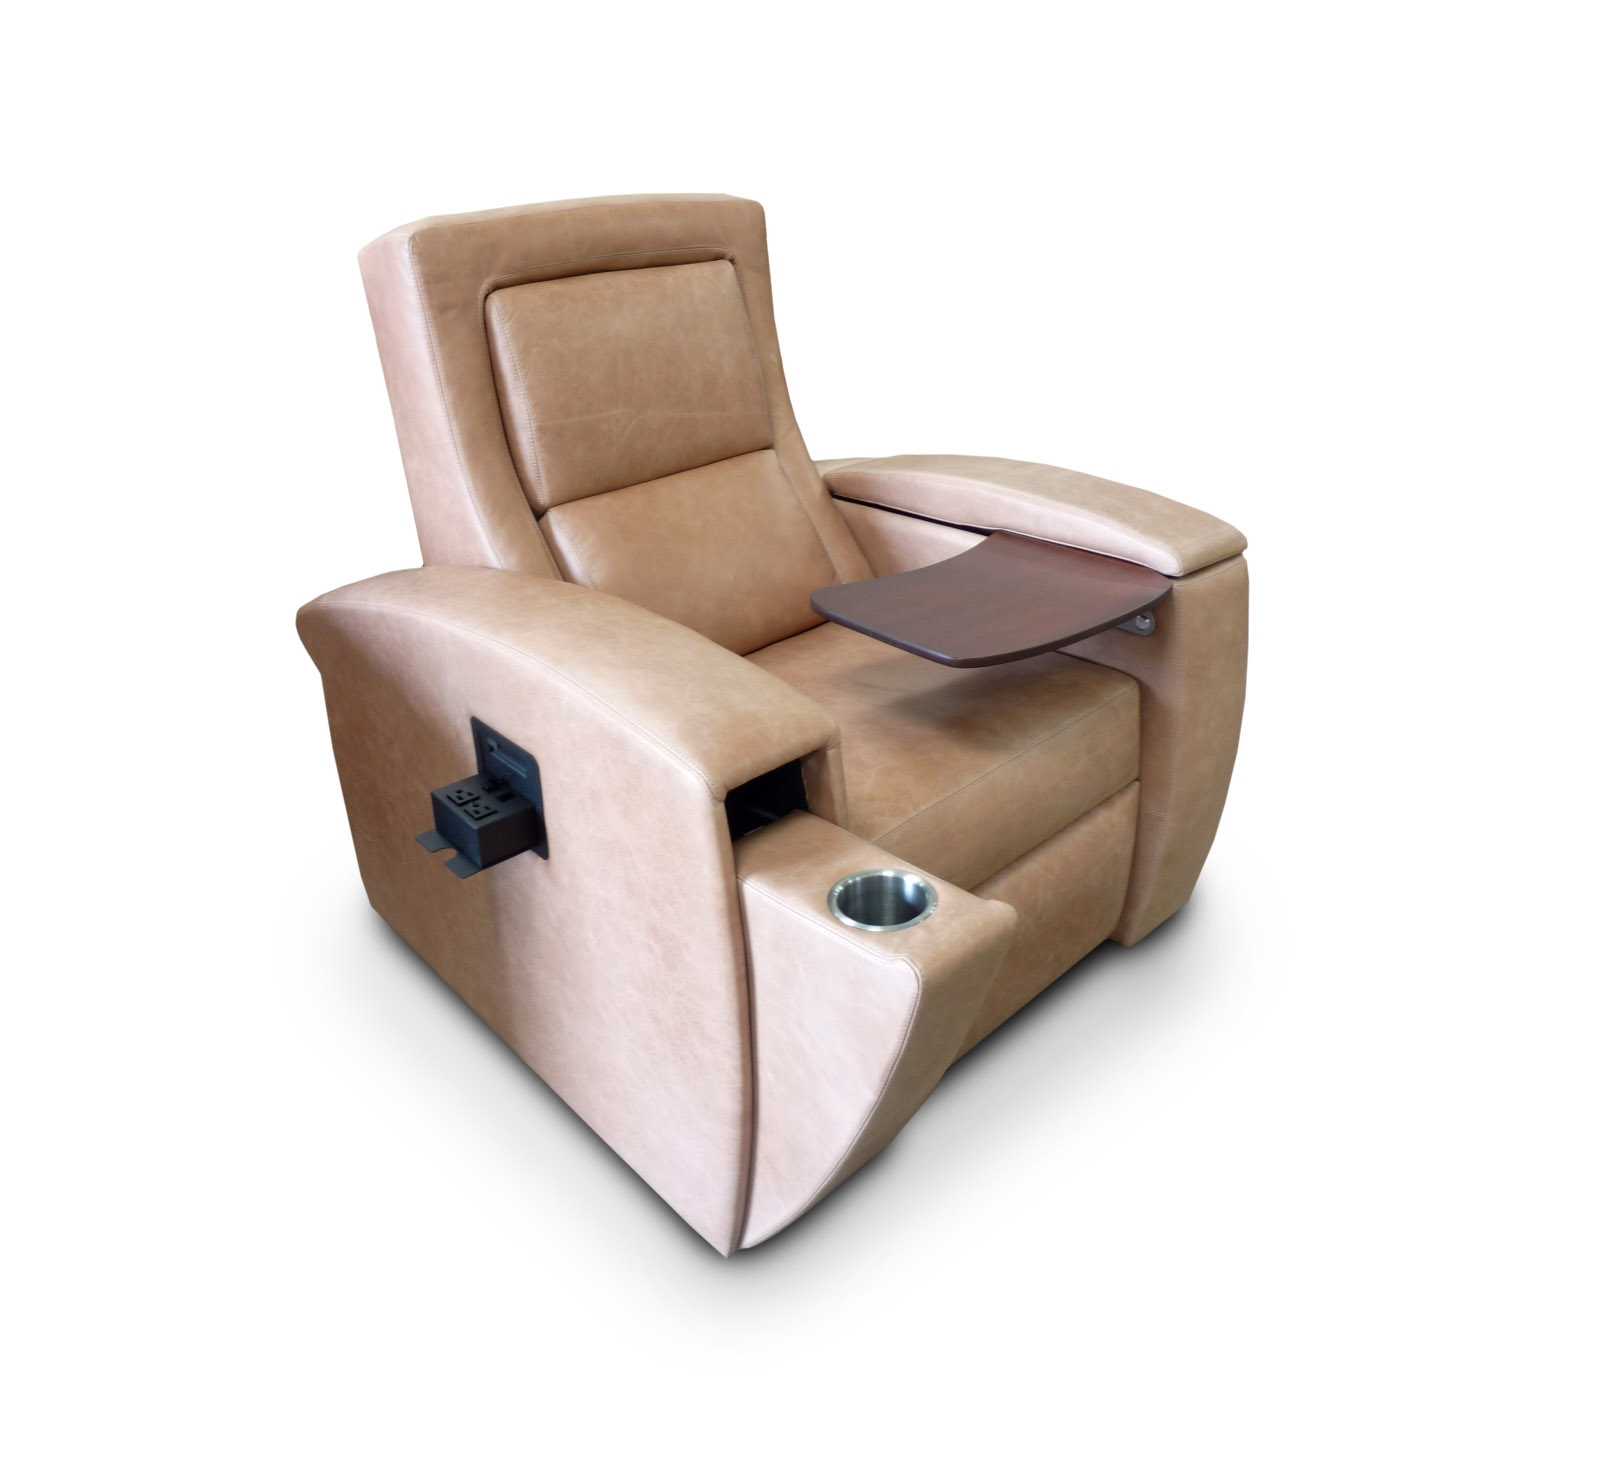 1st Class Motorized Tray Table; Front Access Cup Holder; Data Port; Motorized Lumbar Support